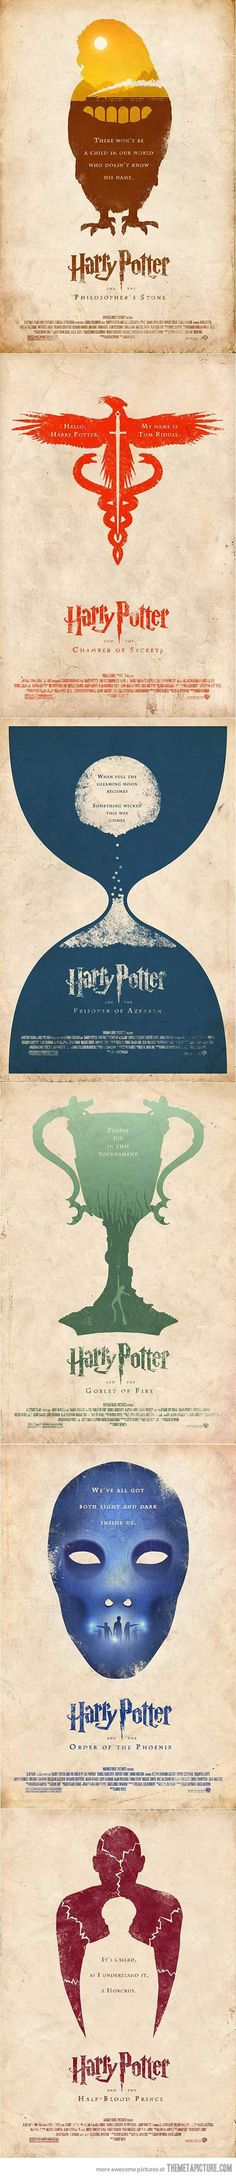 Simple Harry Potter Posters